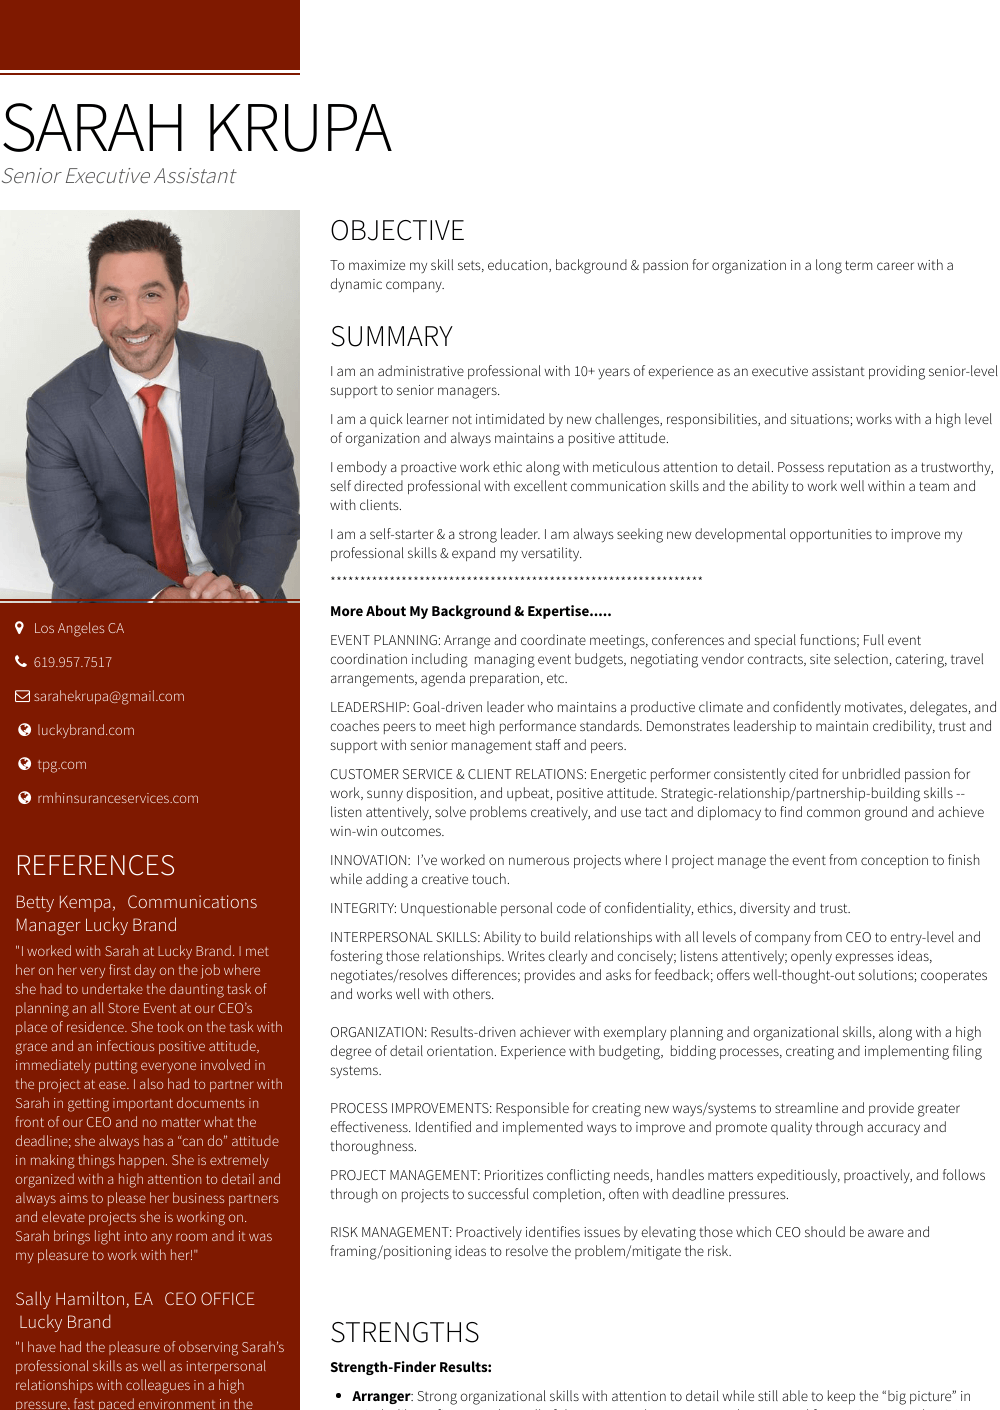 Senior Executive Resume Samples And Templates Visualcv